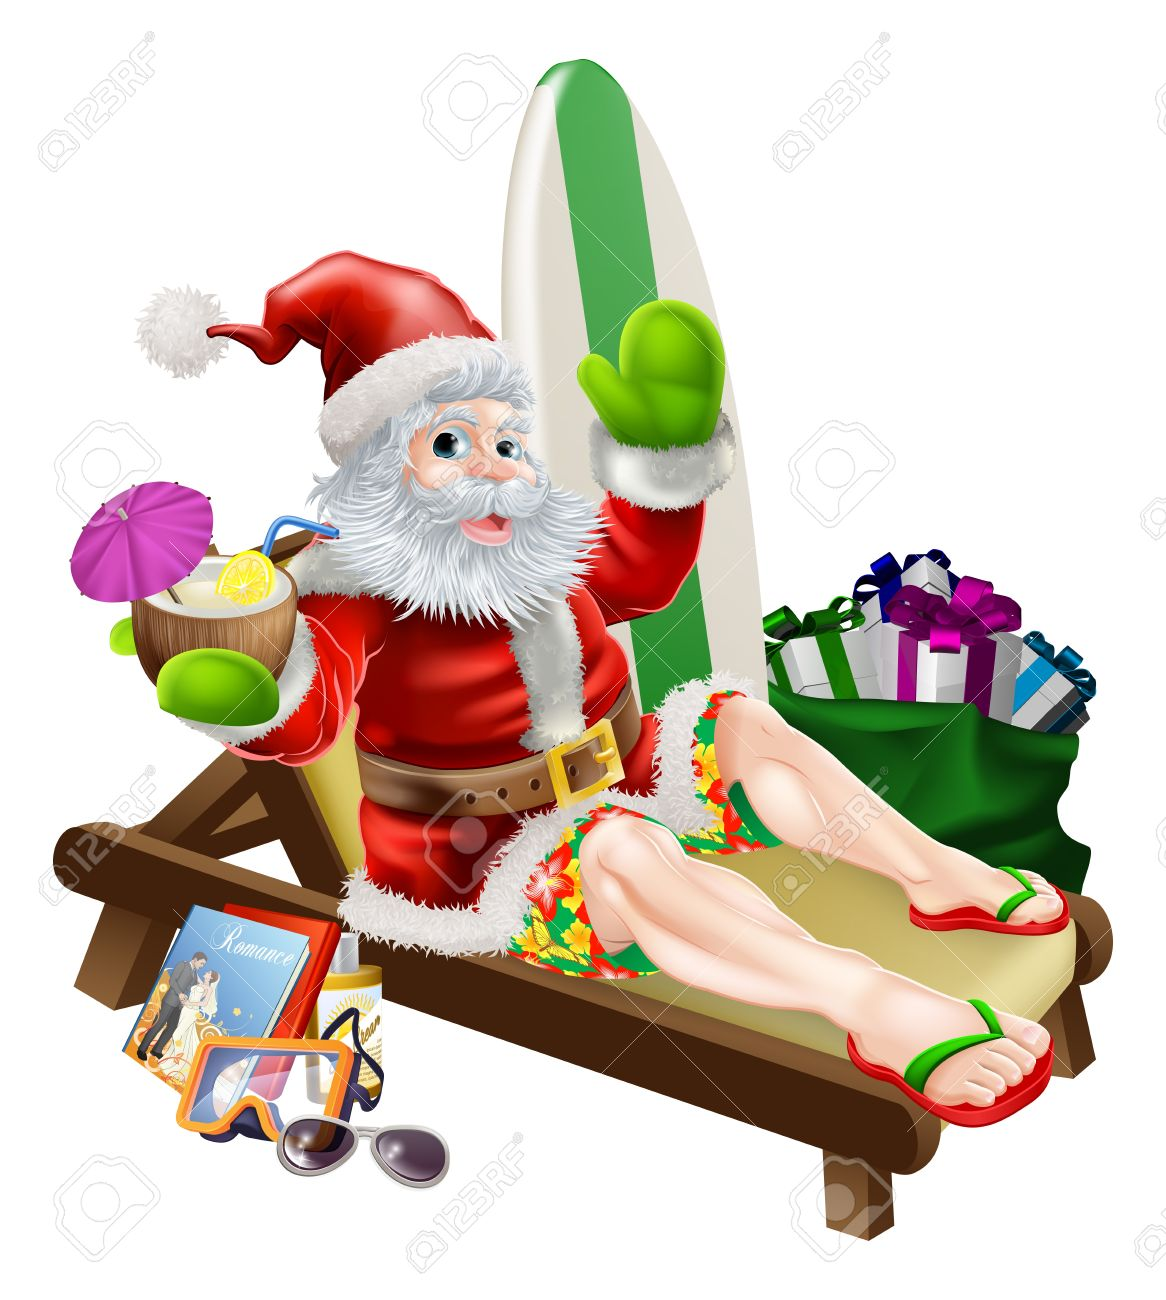 Christmas Santa Claus relaxing on the beach or by the pool wearing...